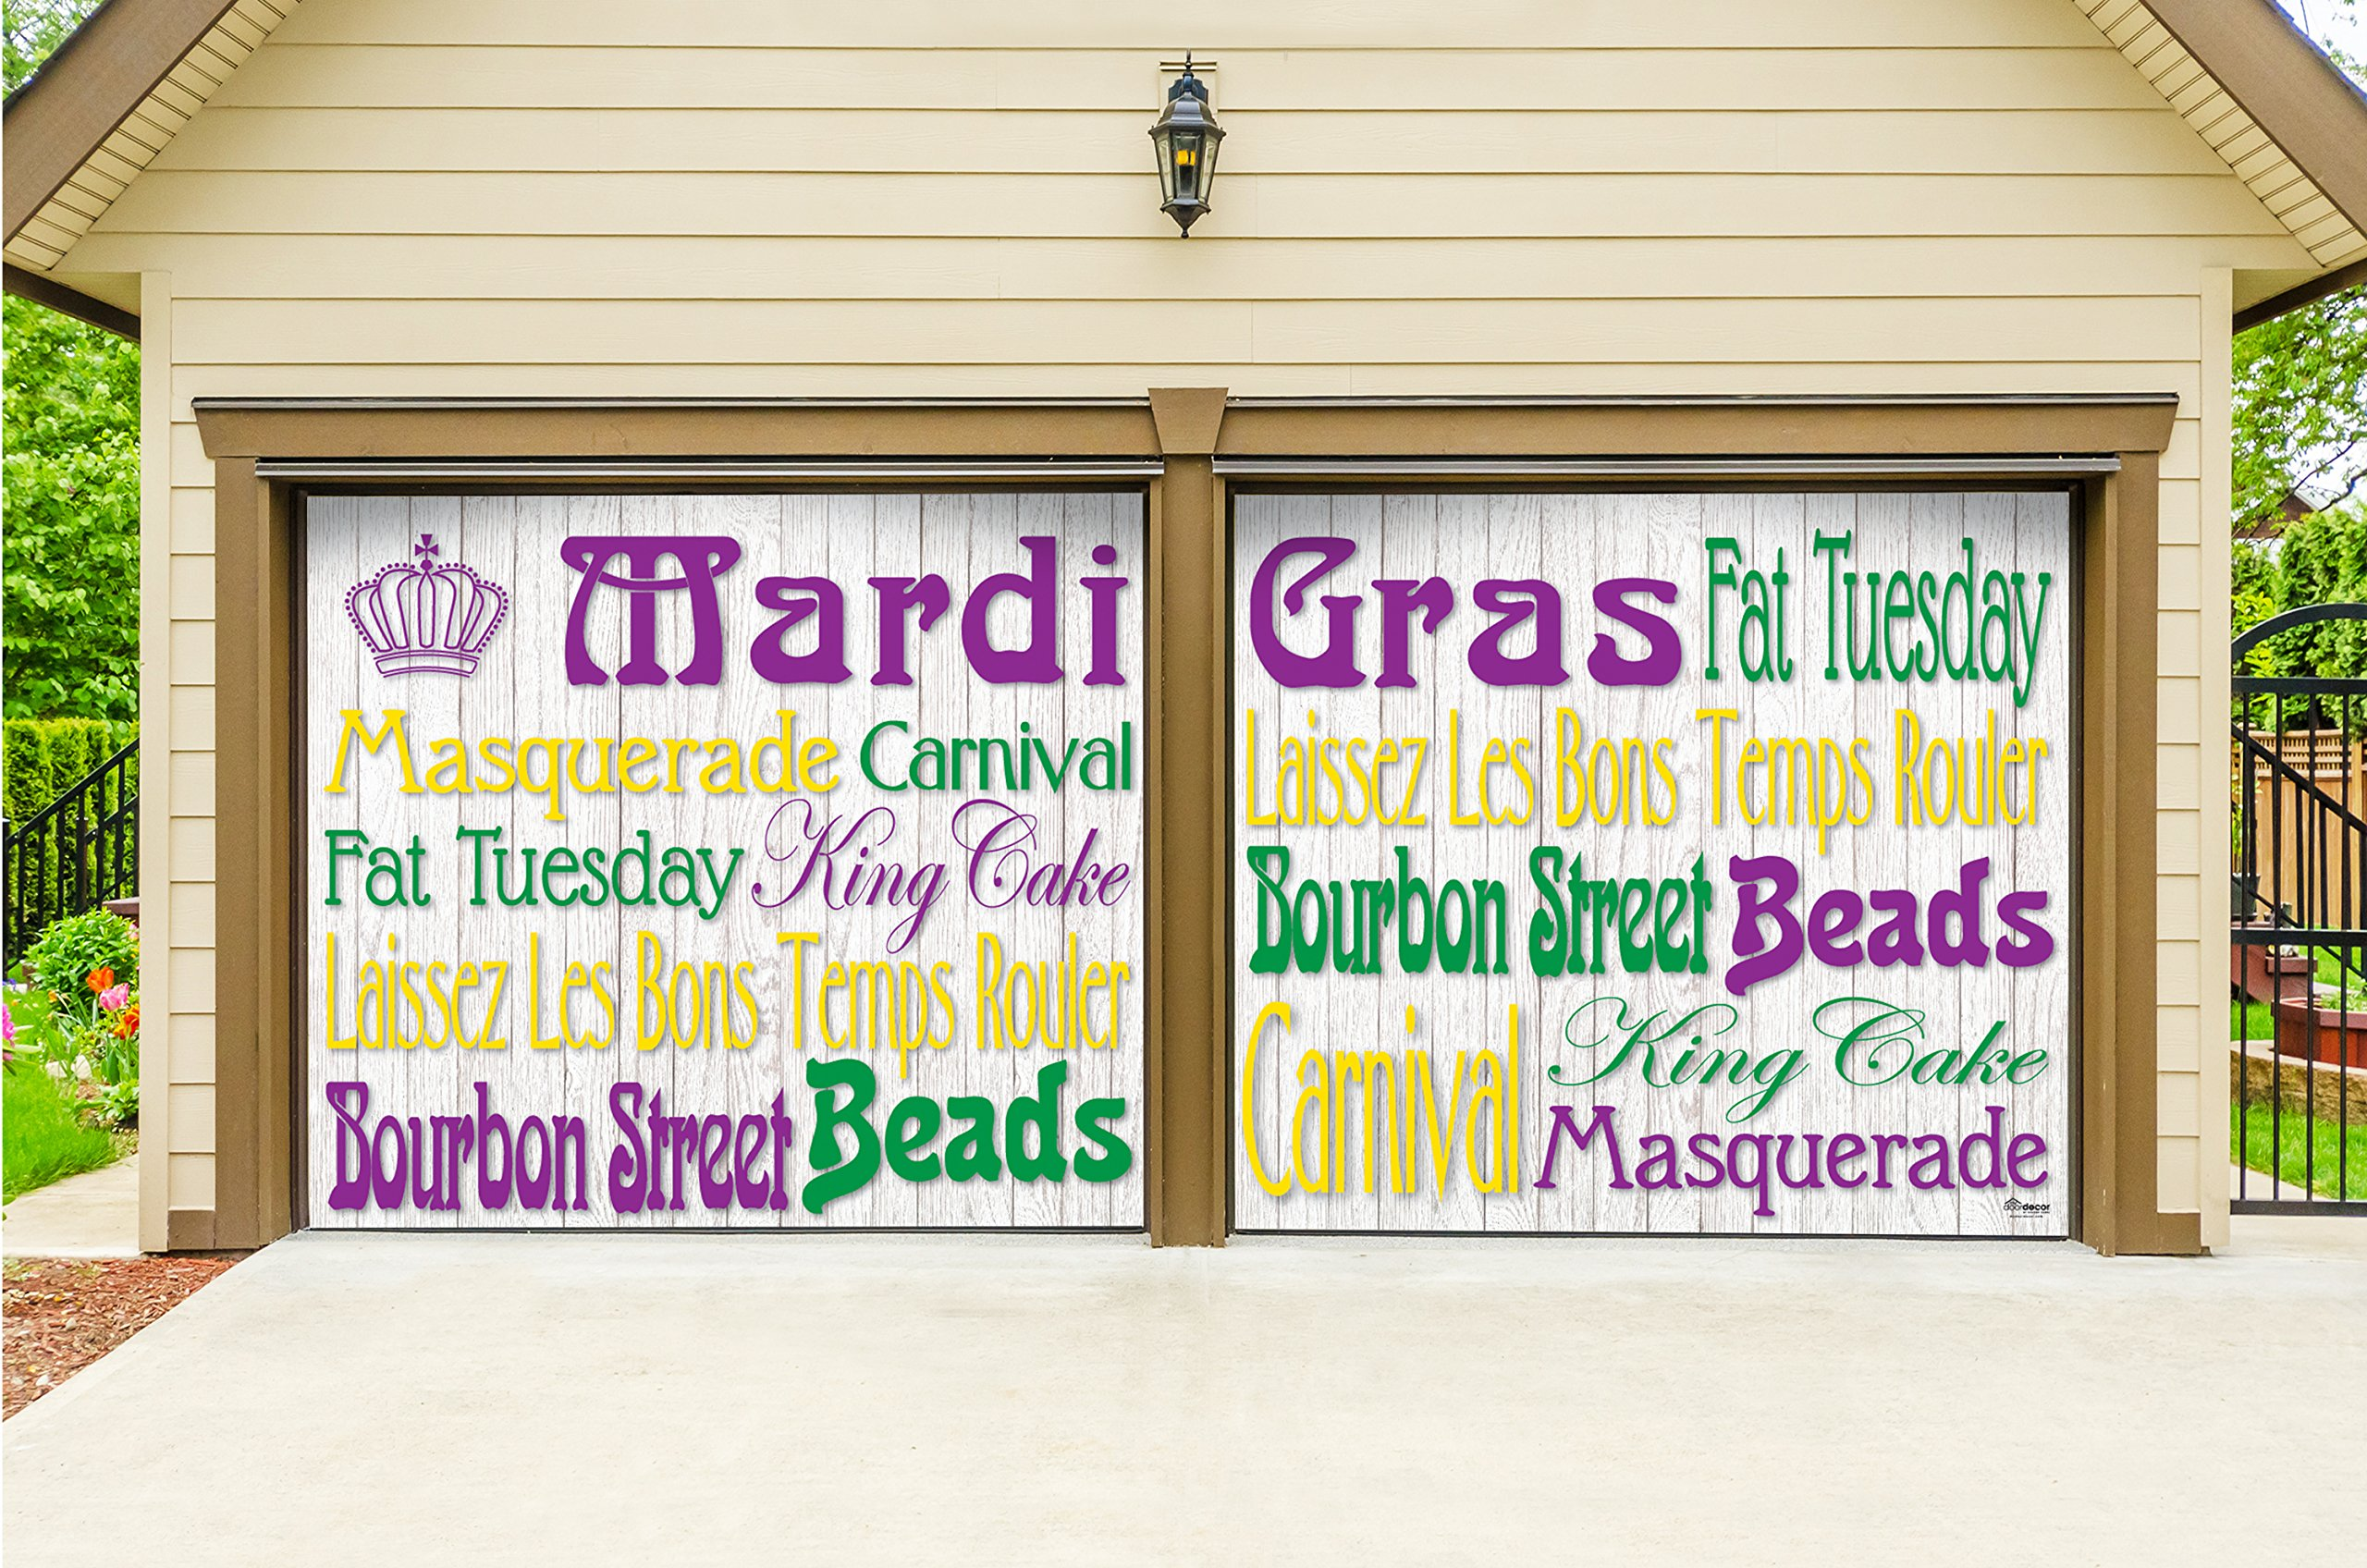 Outdoor Mardi Gras Decorations 2 Car Split Garage Door Banner Cover Mural - Mardi Gras Words, Two 7'x 8' Graphic Kits - ''The Original Mardi Gras Supplies Garage Door Banner Decor''